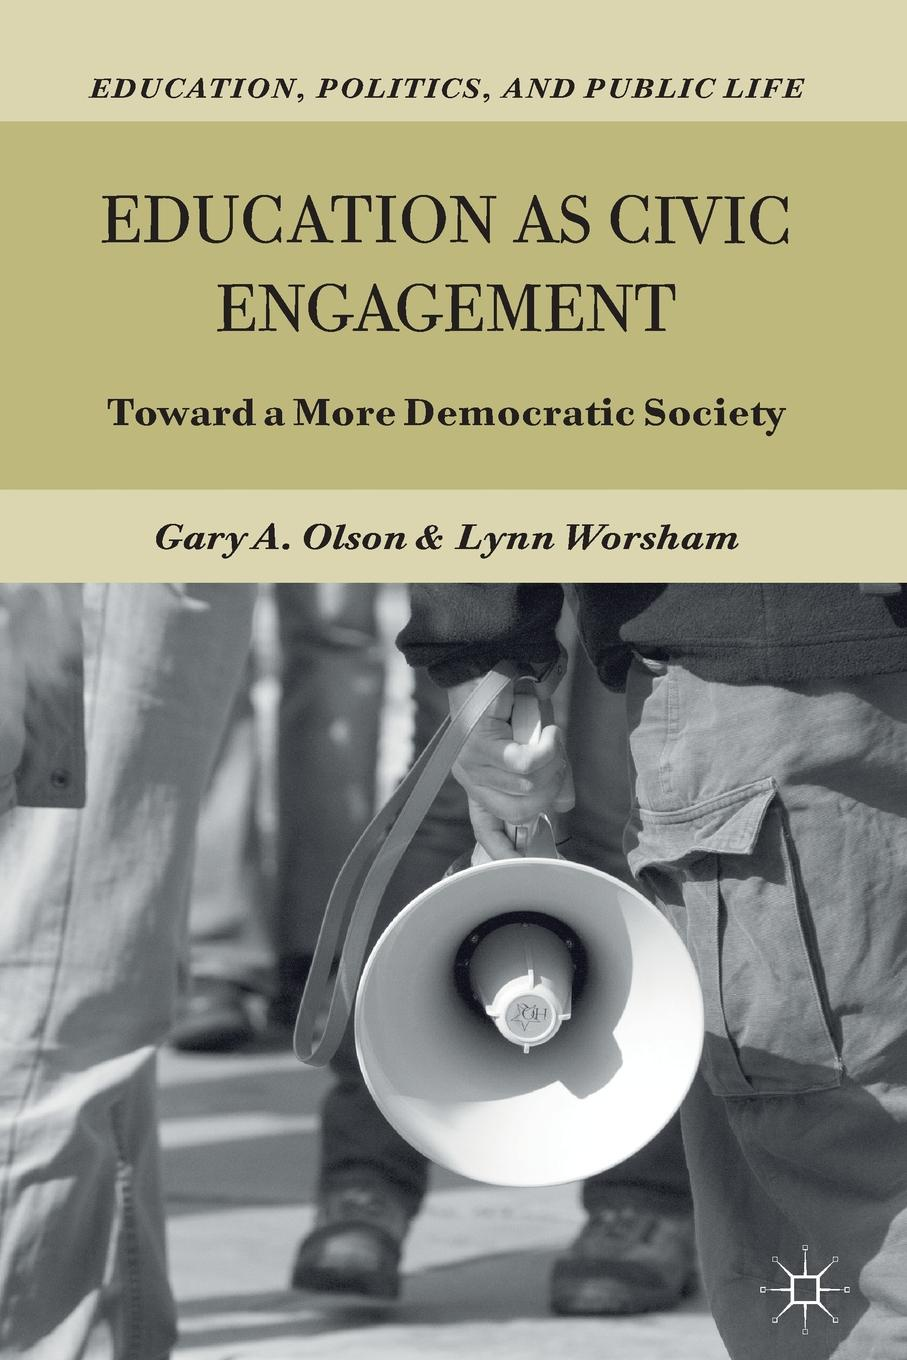 Education as Civic Engagement. Toward a More Democratic Society amy gutmann democratic education revised edition